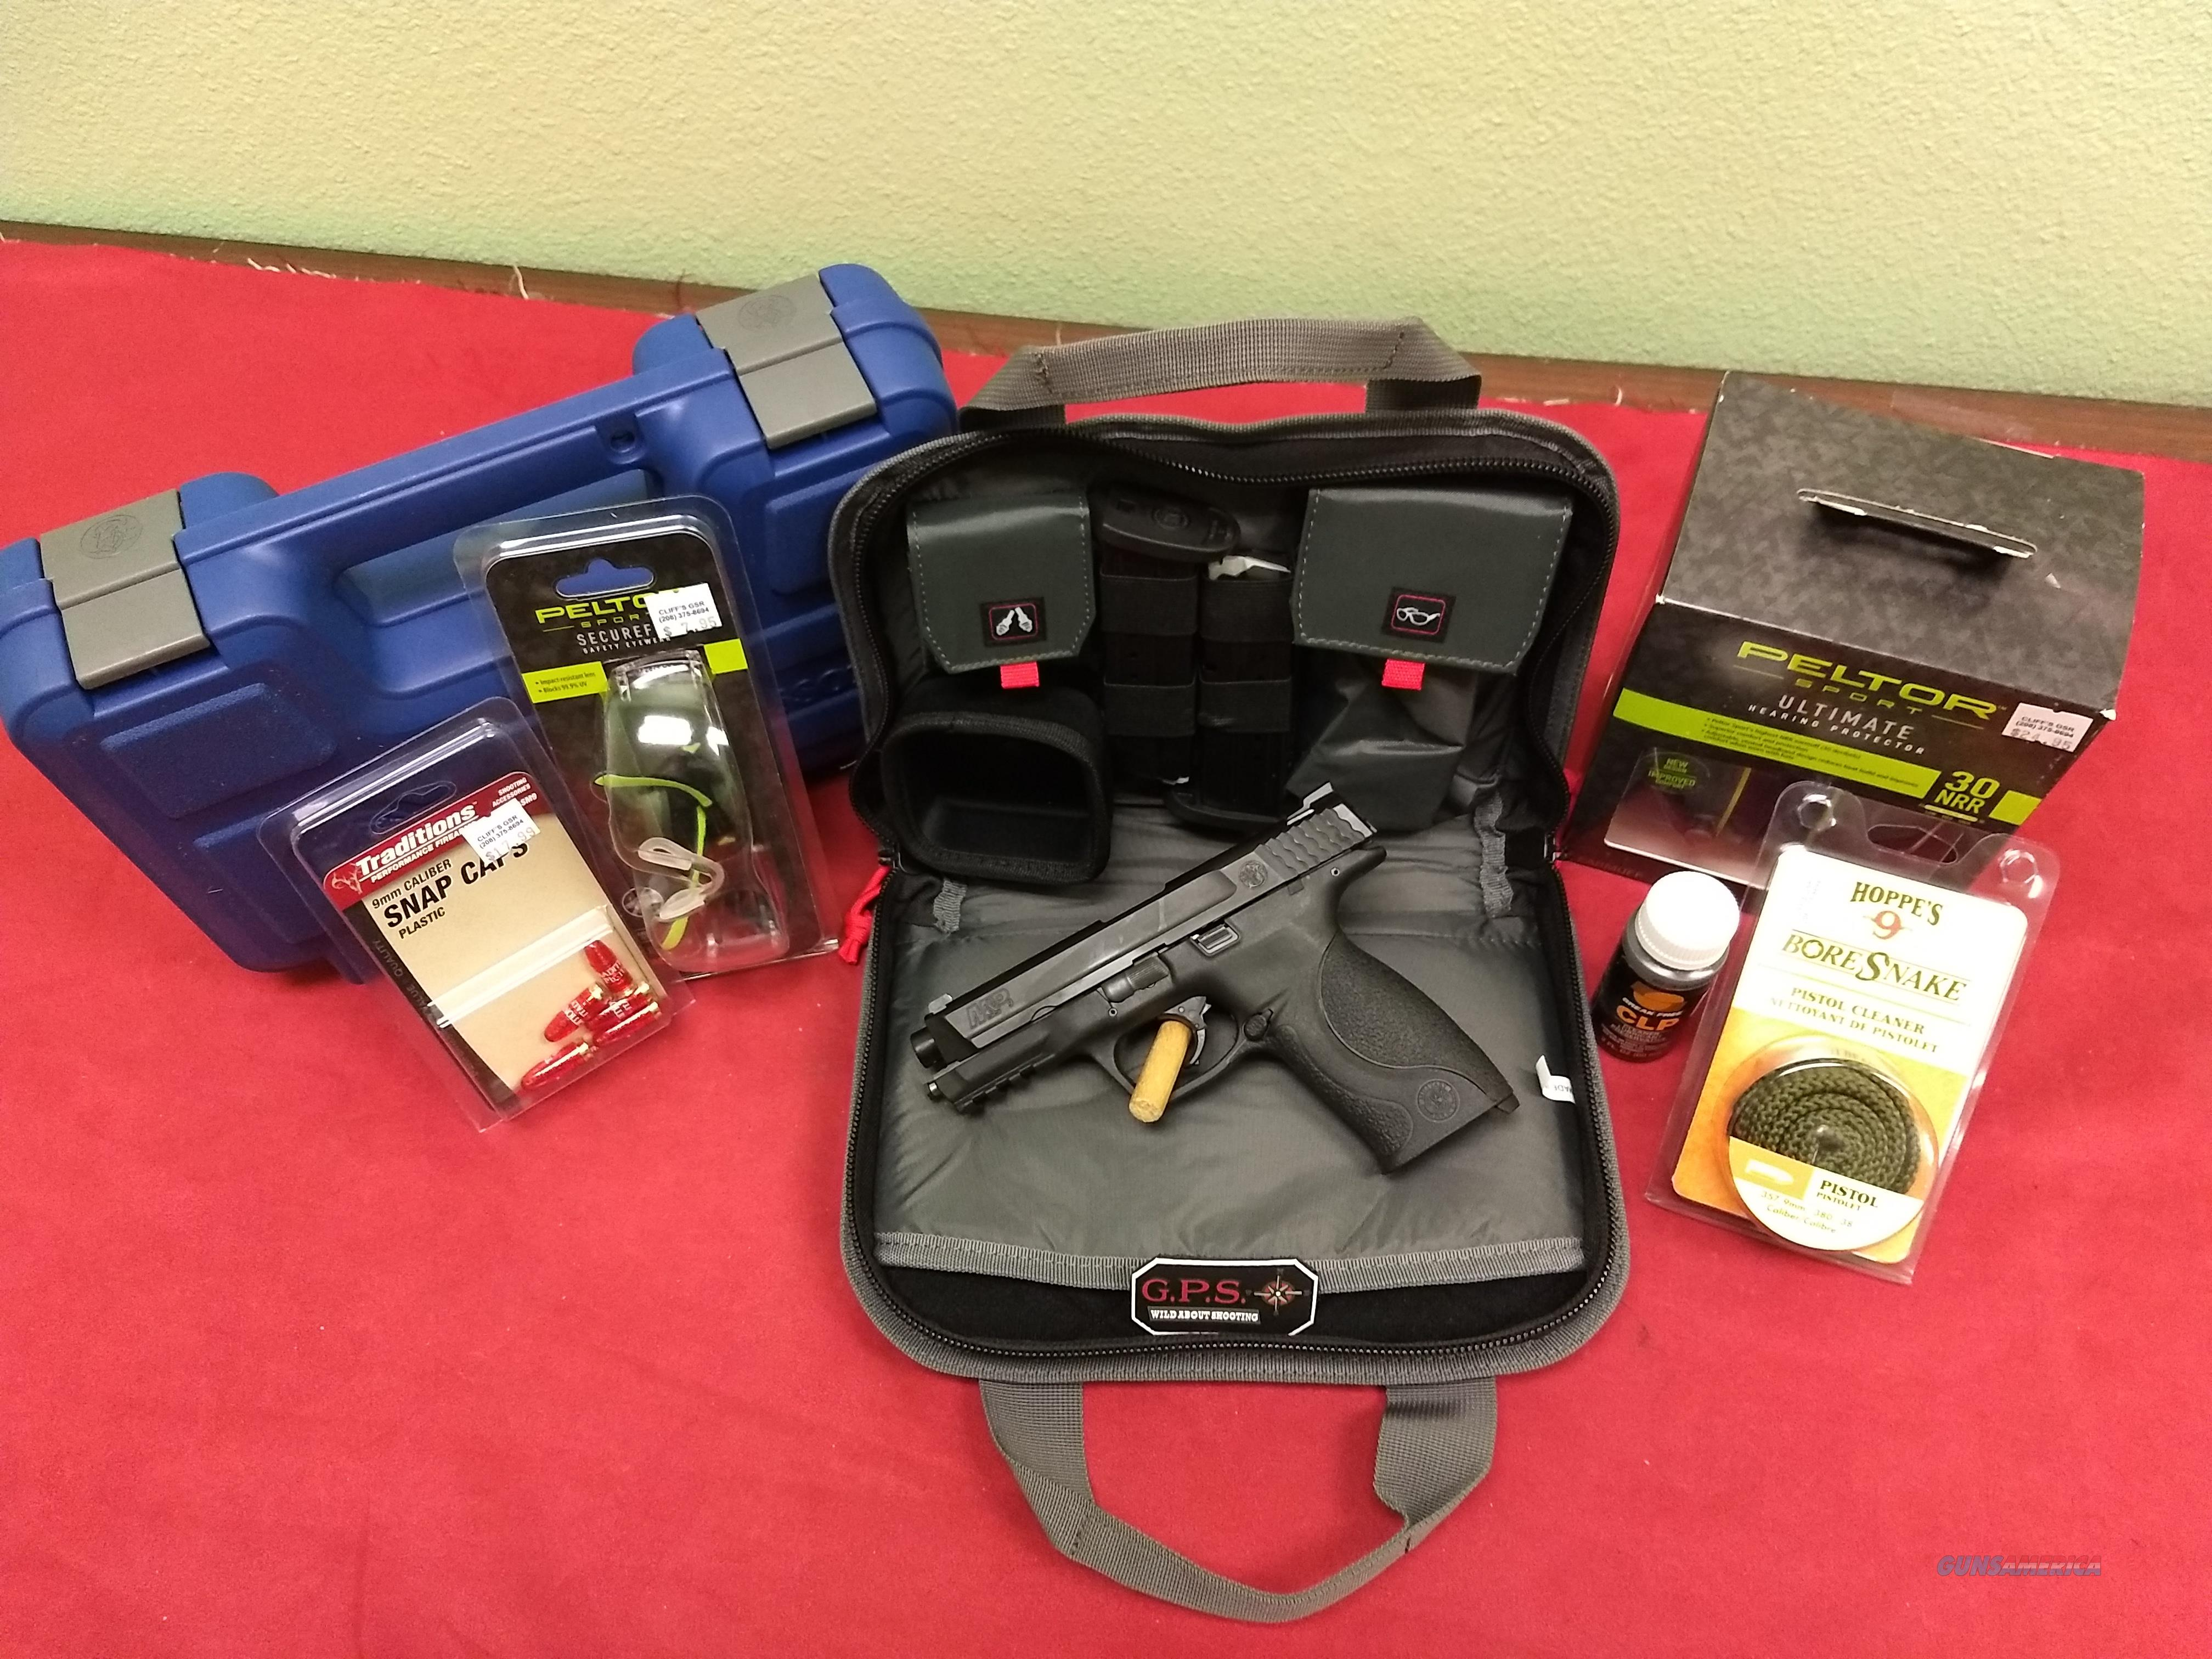 NEW SHOOTER PACKAGE! S&W M&P 9mm Pistol + ACCESSORIES!  Guns > Pistols > Smith & Wesson Pistols - Autos > Polymer Frame